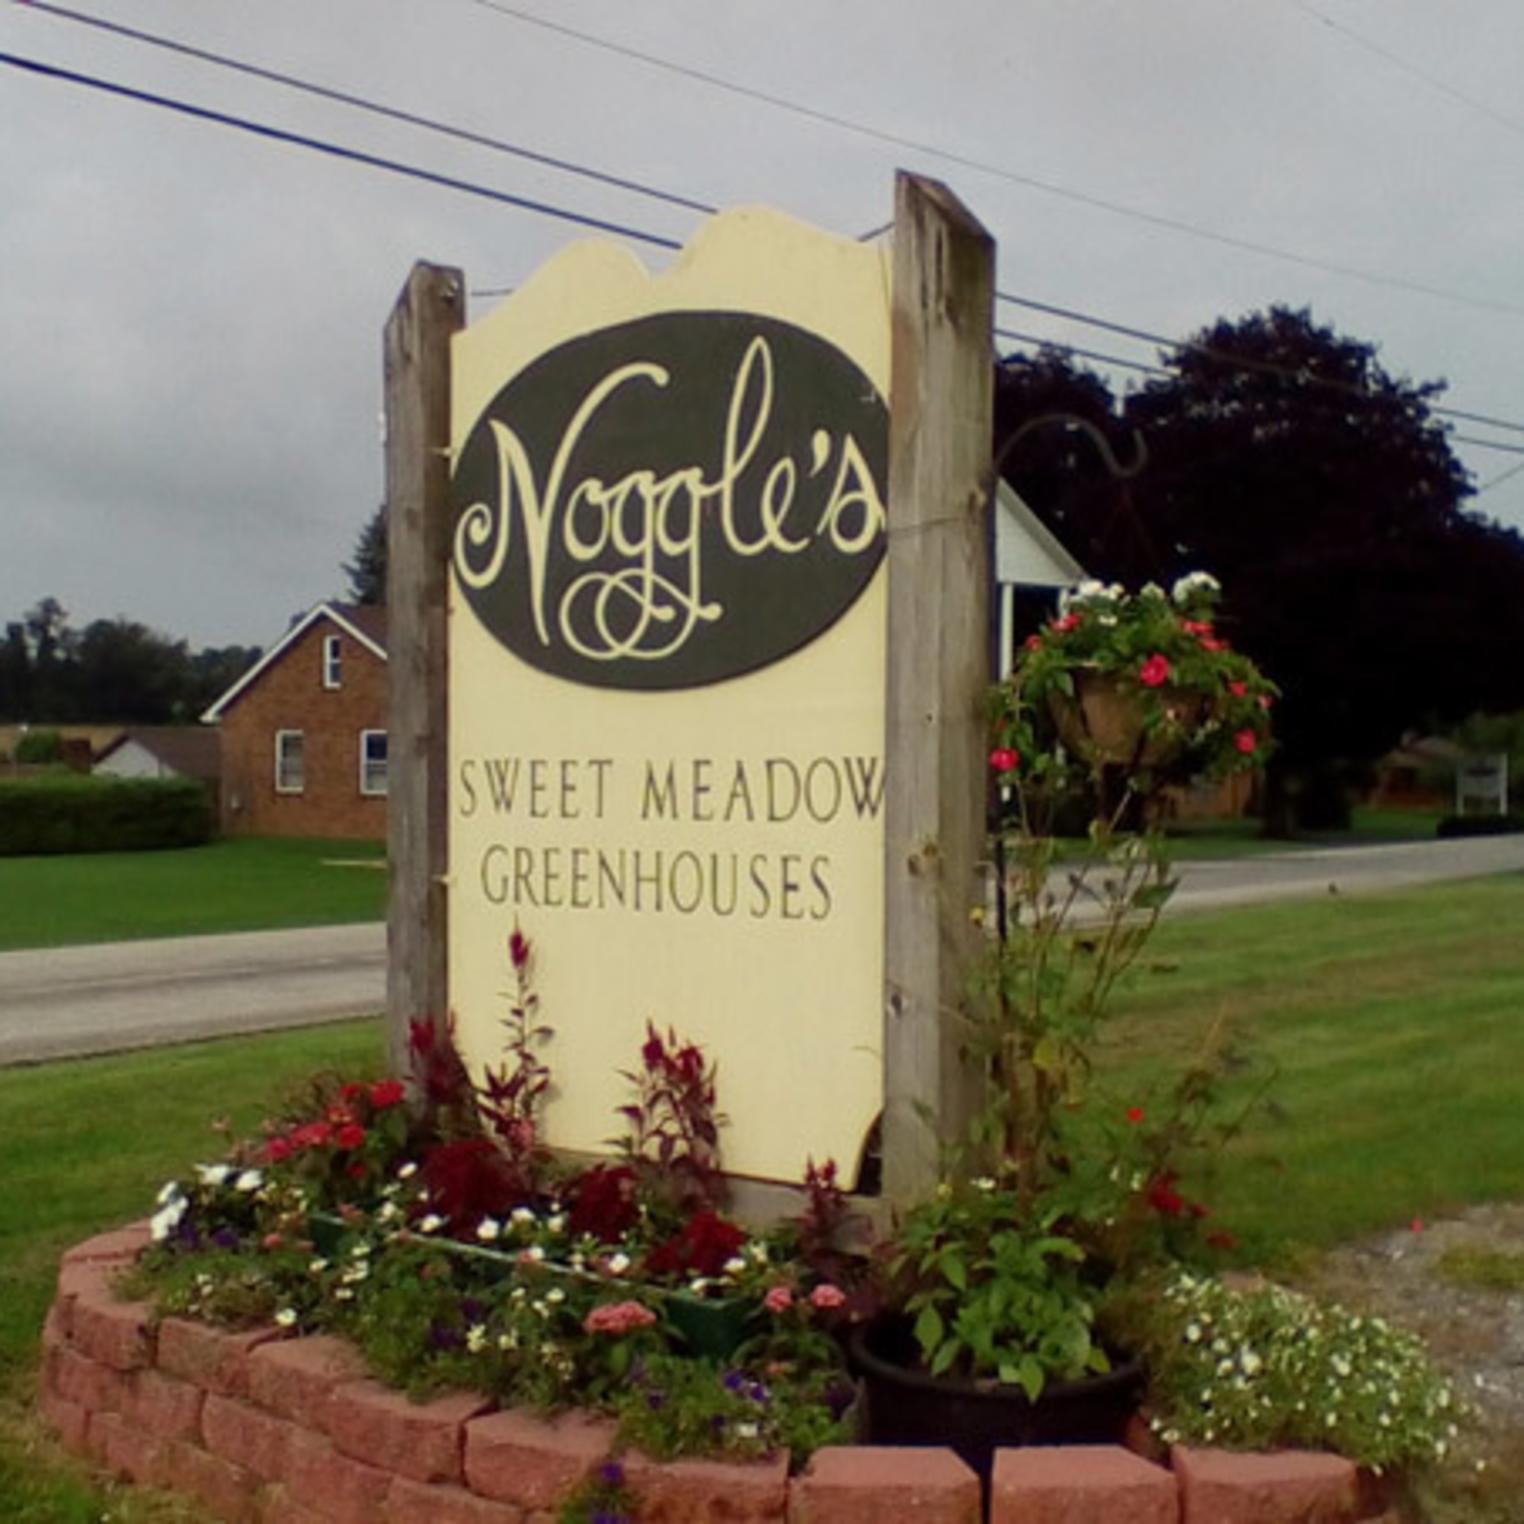 Noggles Sweet Meadow